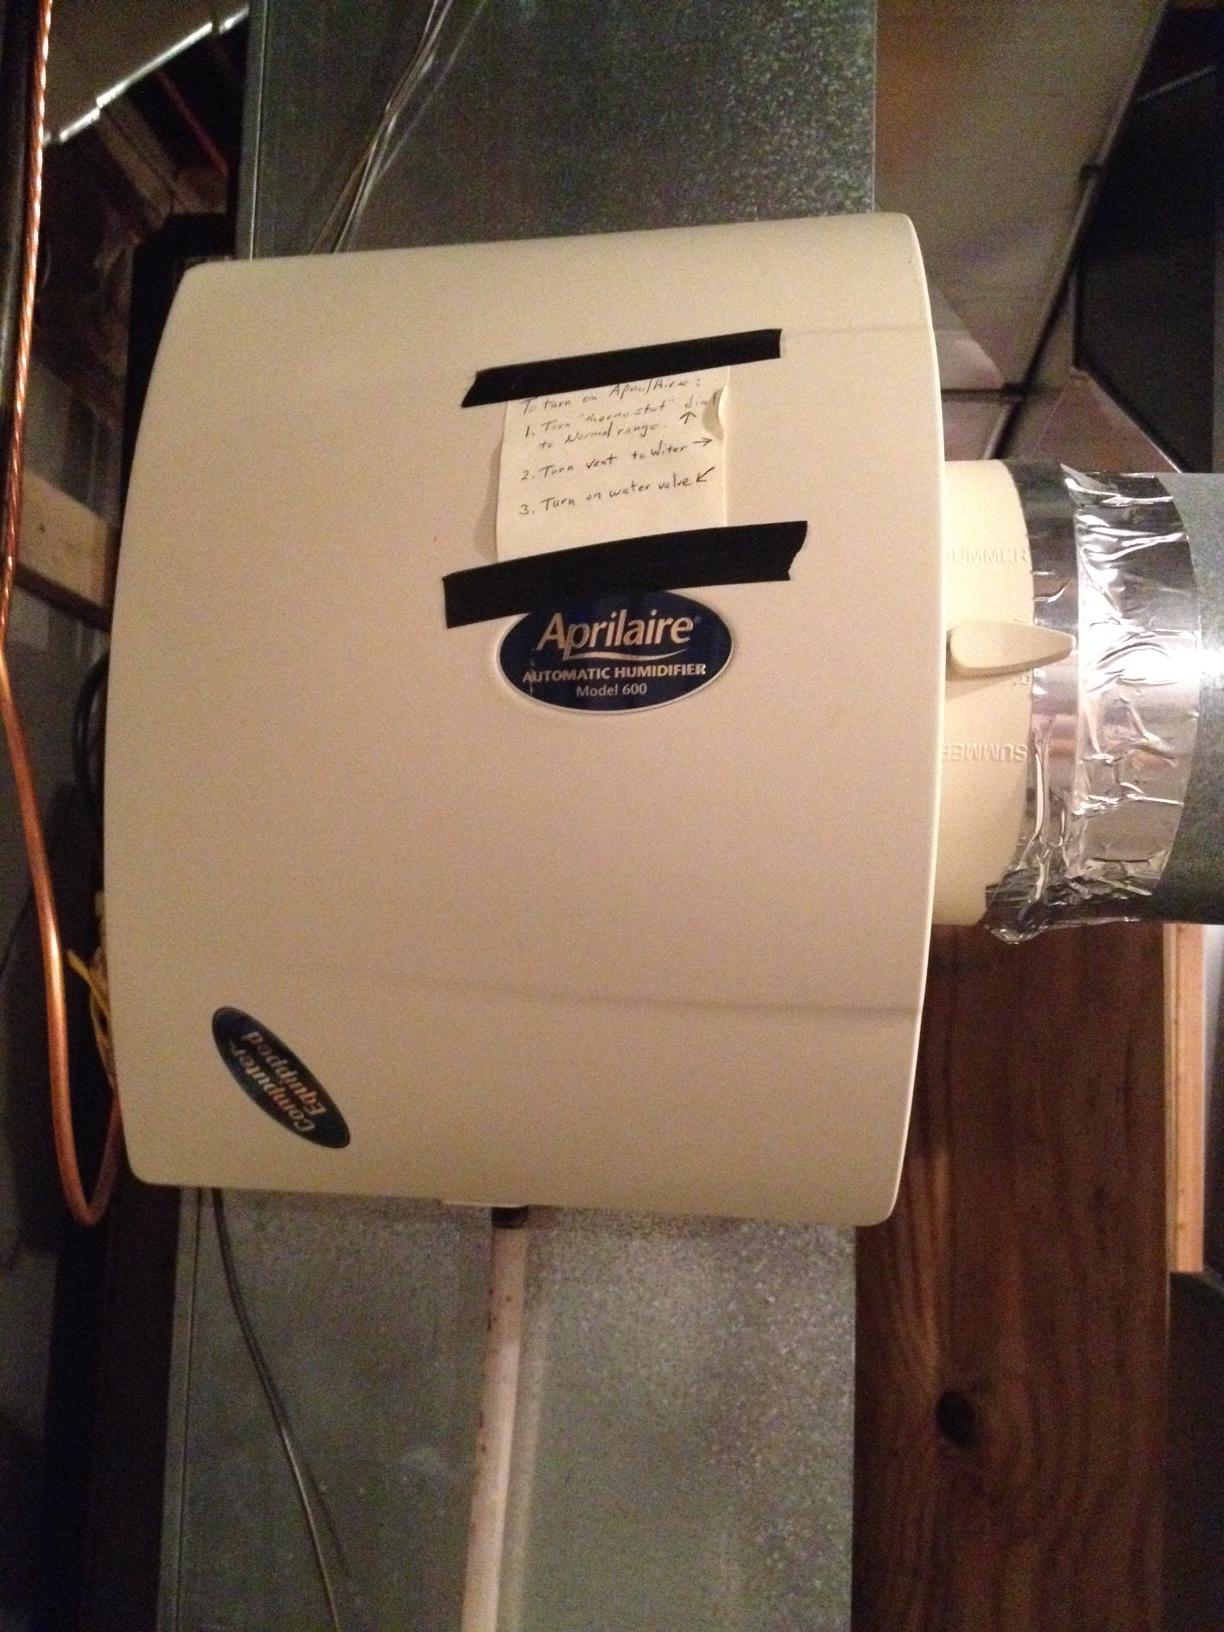 aprilaire 600 manual wiring diagram well tank pressure switch hvac how to diagnose a broken humidifier